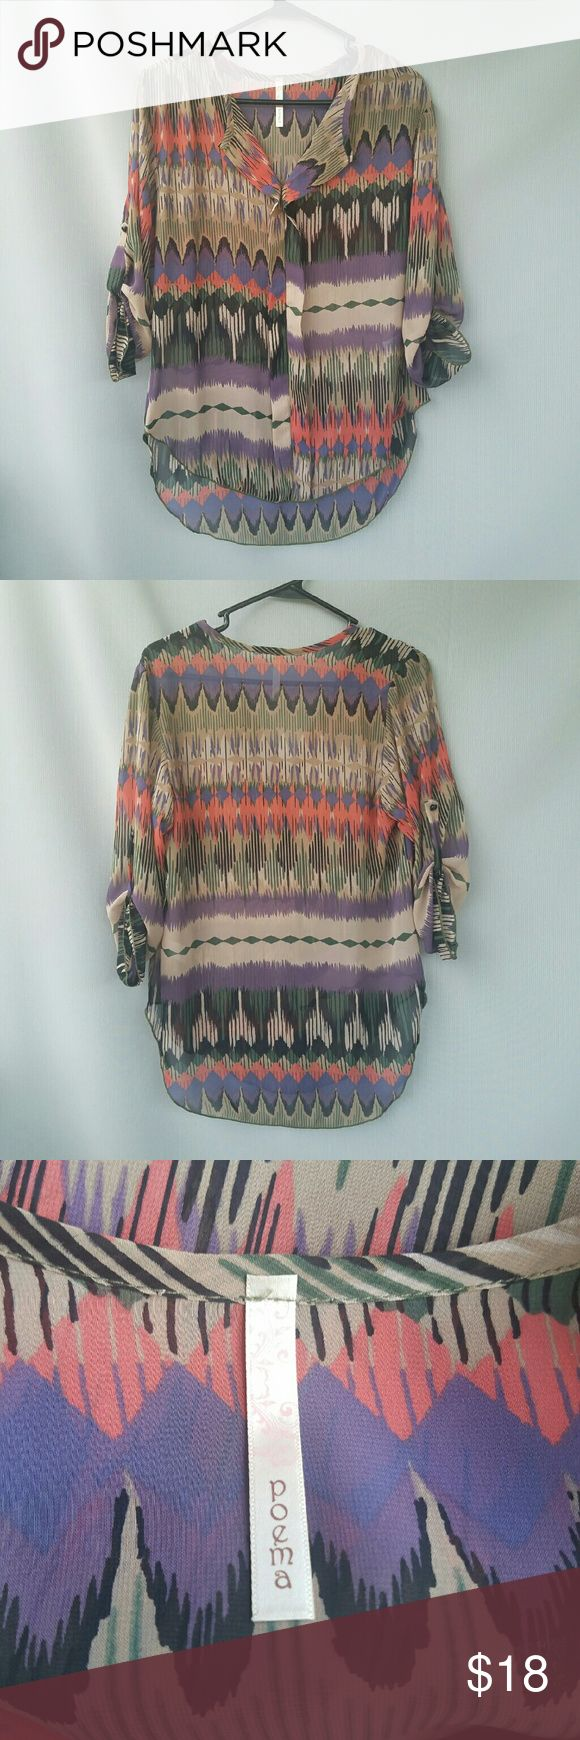 Poema Aztec Top Excellent condition  Feel free to ask me any additional questions! Bundles 3+ 15% off. Happy Poshing! No trades, or modeling. poema Tops